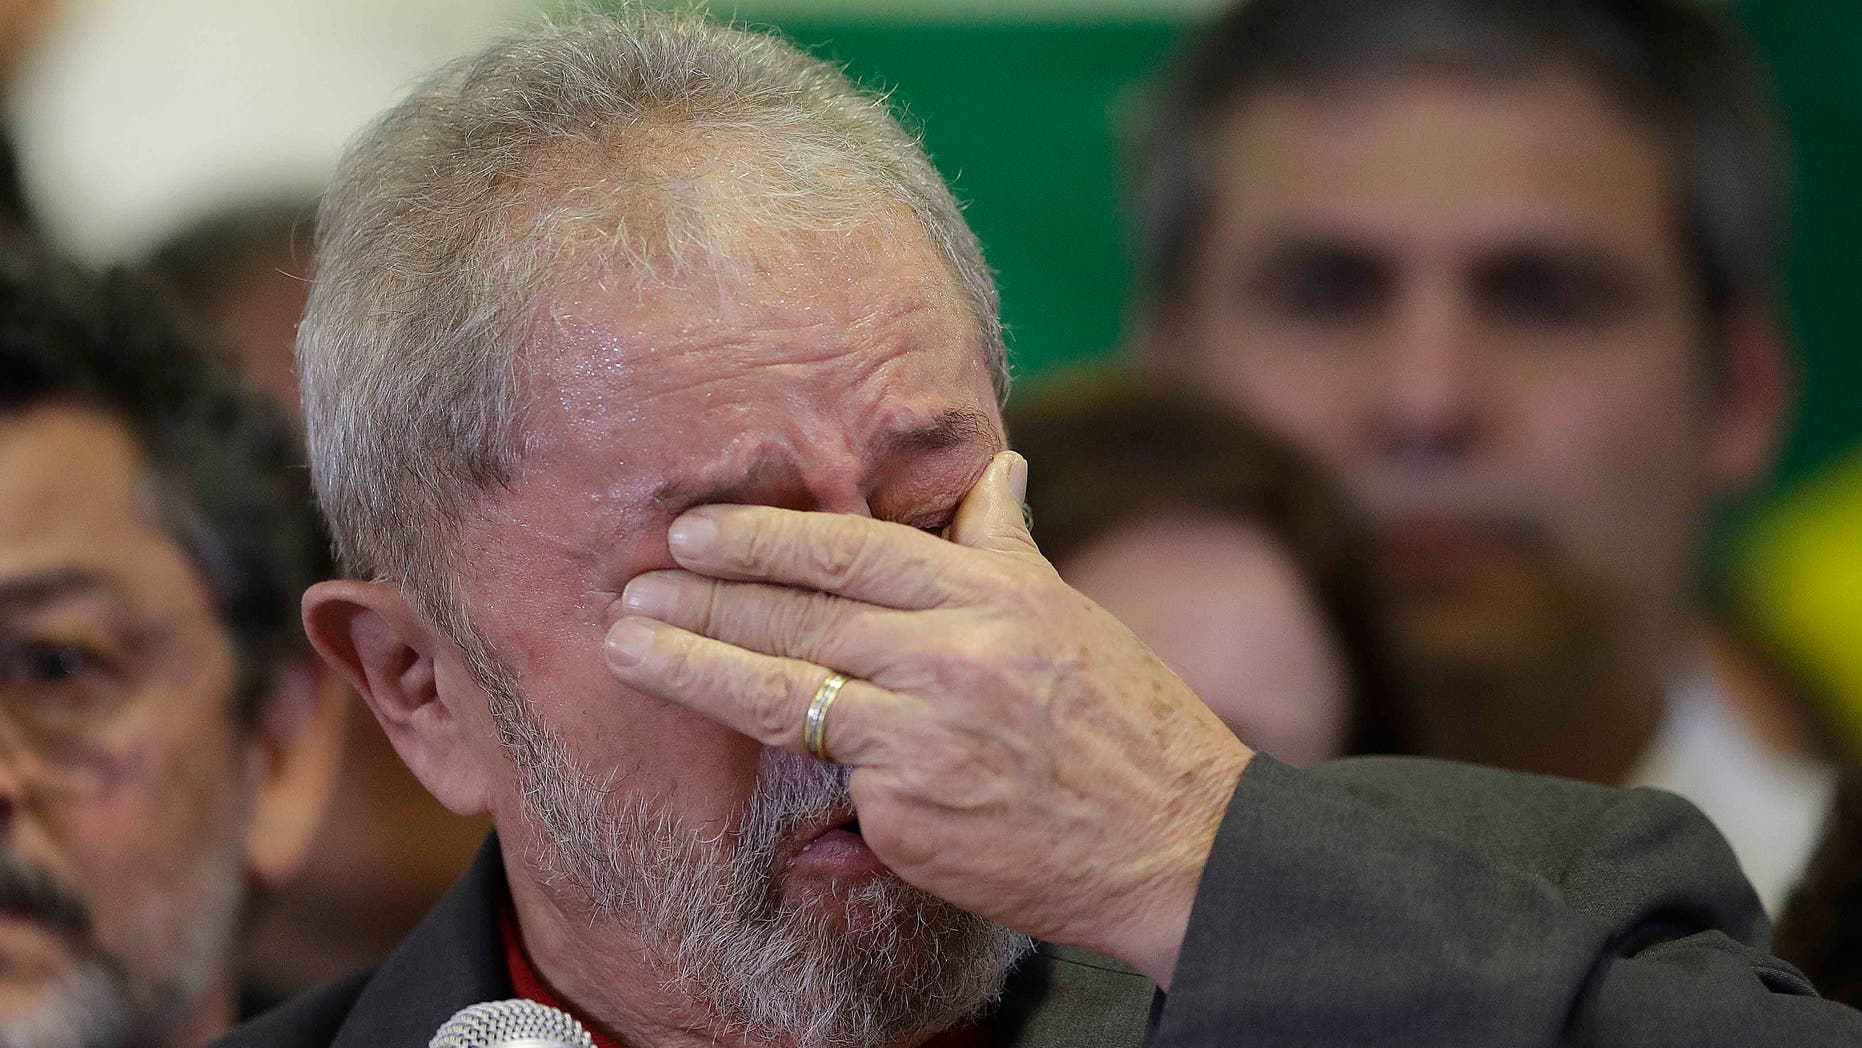 Lula da Silva weeps during a news conference on the corruption charges he is facing, on Thursday, Sept. 15, 2016.